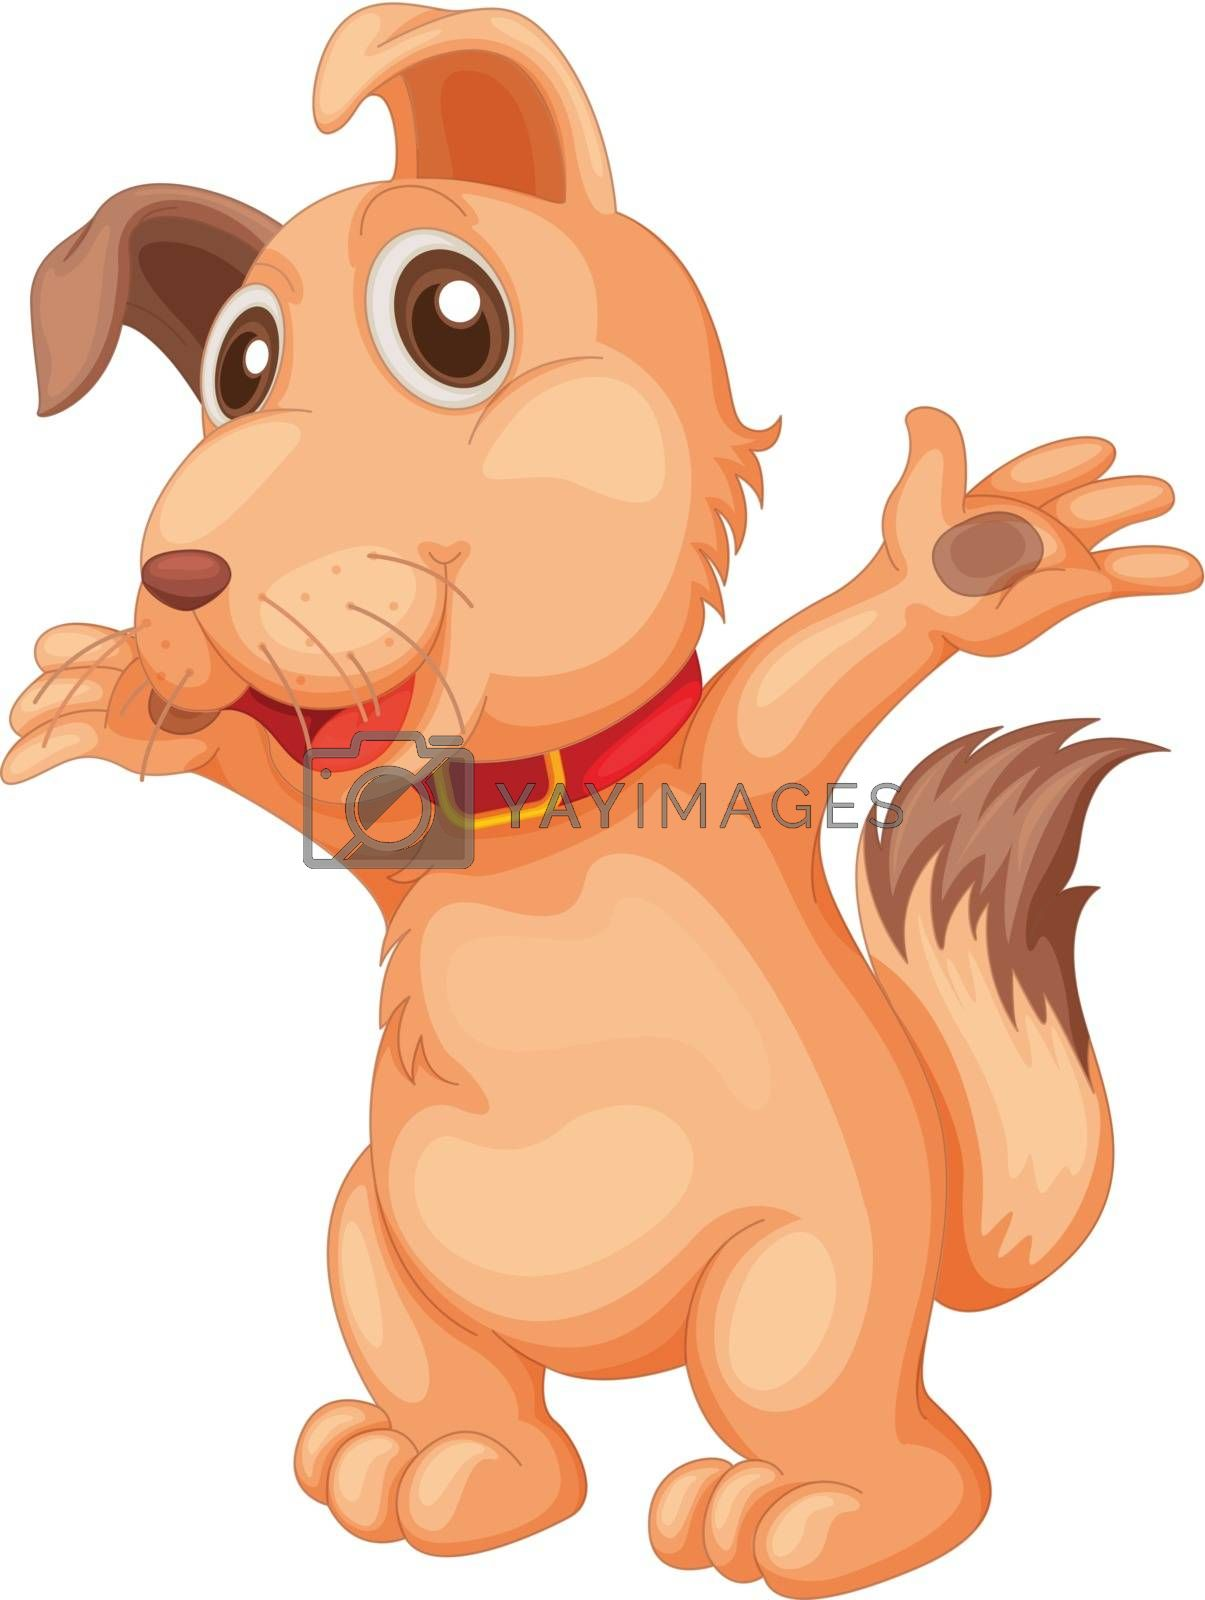 Puppy dog pet on a white background